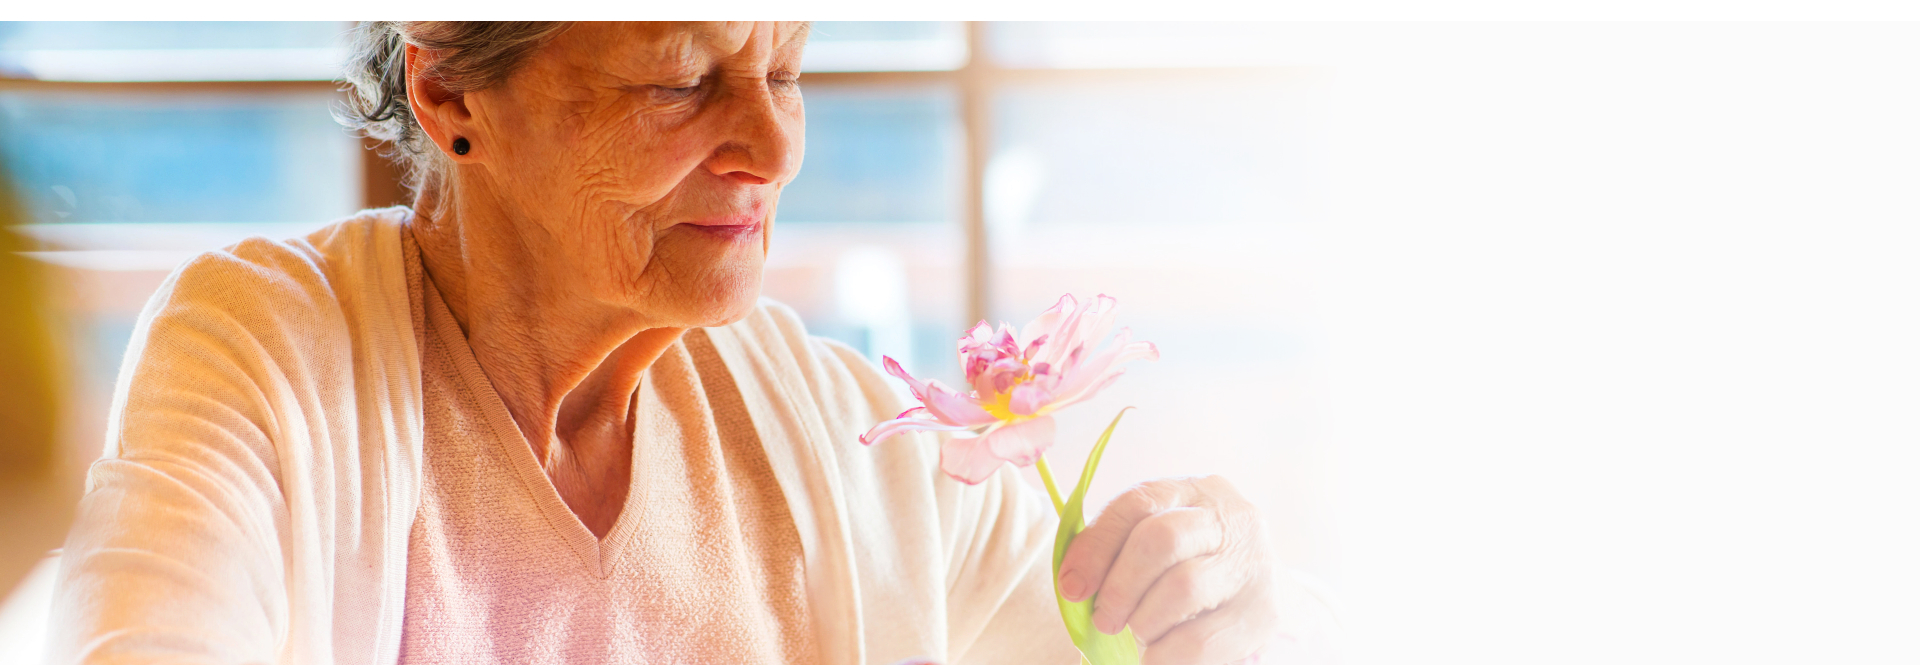 old woman holding a flower